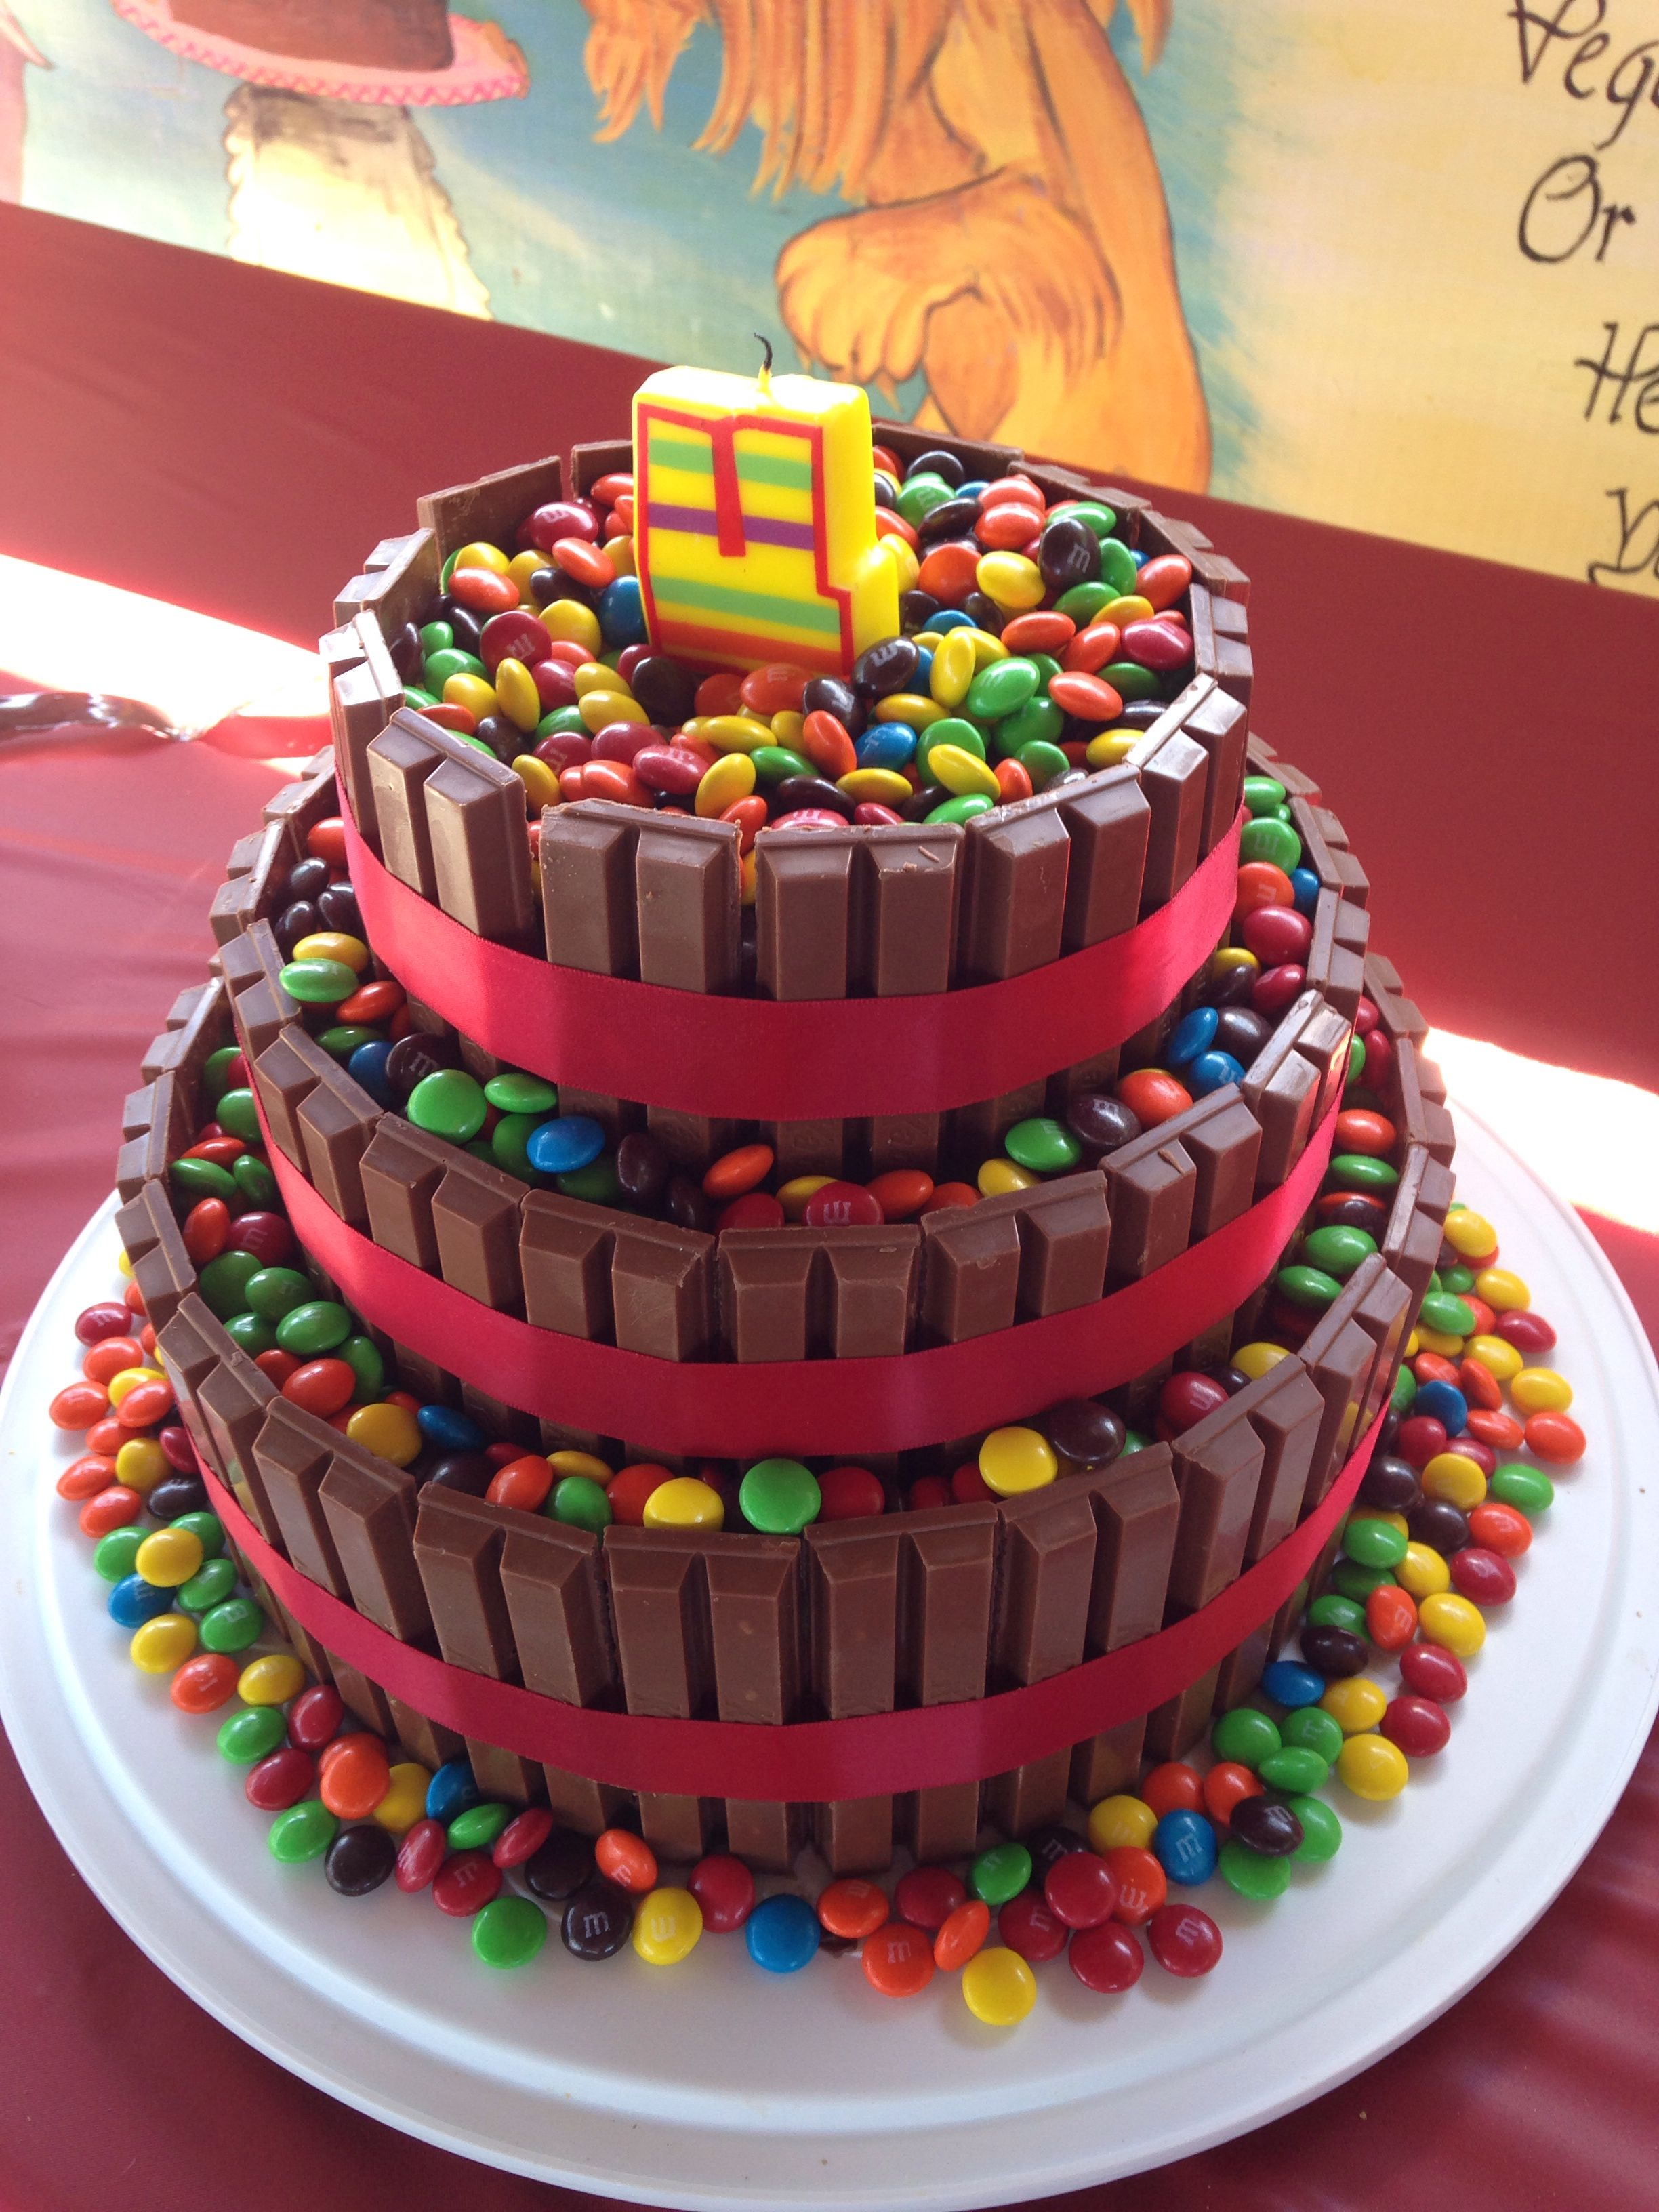 The 3 Tier Kit Kat Cake I Made For My Daughters 4th Birthday